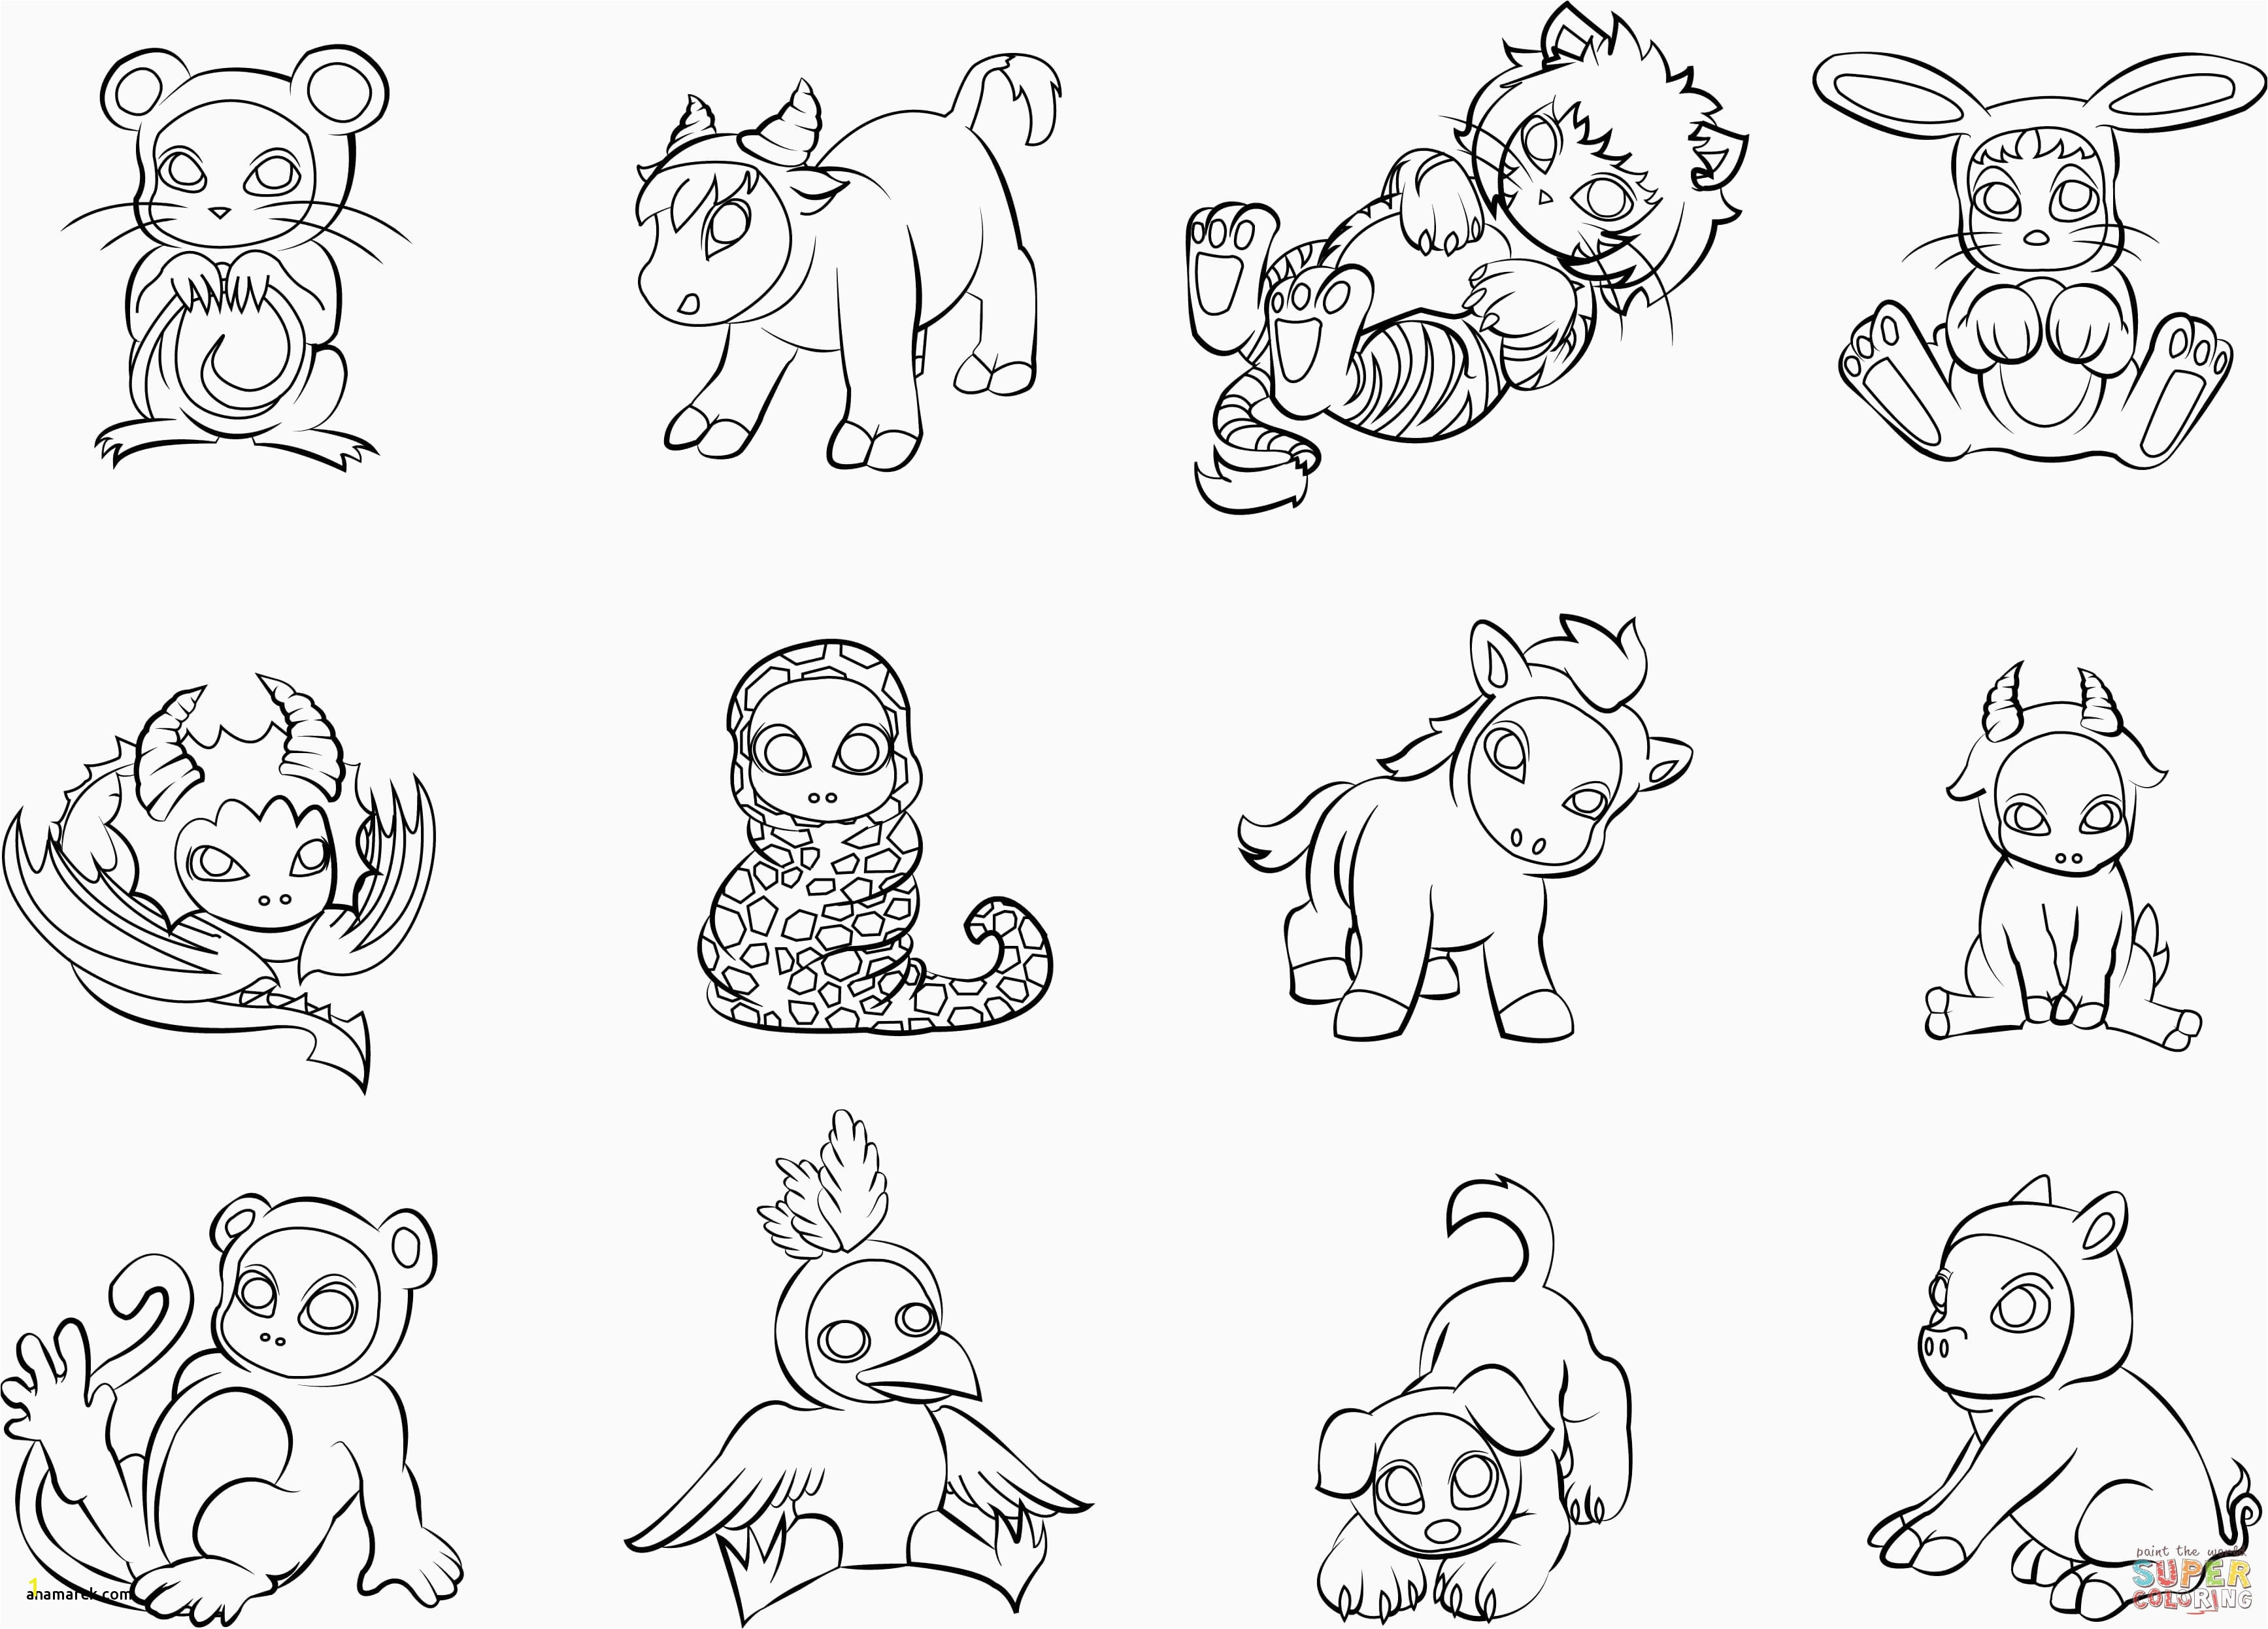 Free Abc Coloring Pages to Print Lovely Cool Letter Y Coloring Pages Elegant Printable Od Dog